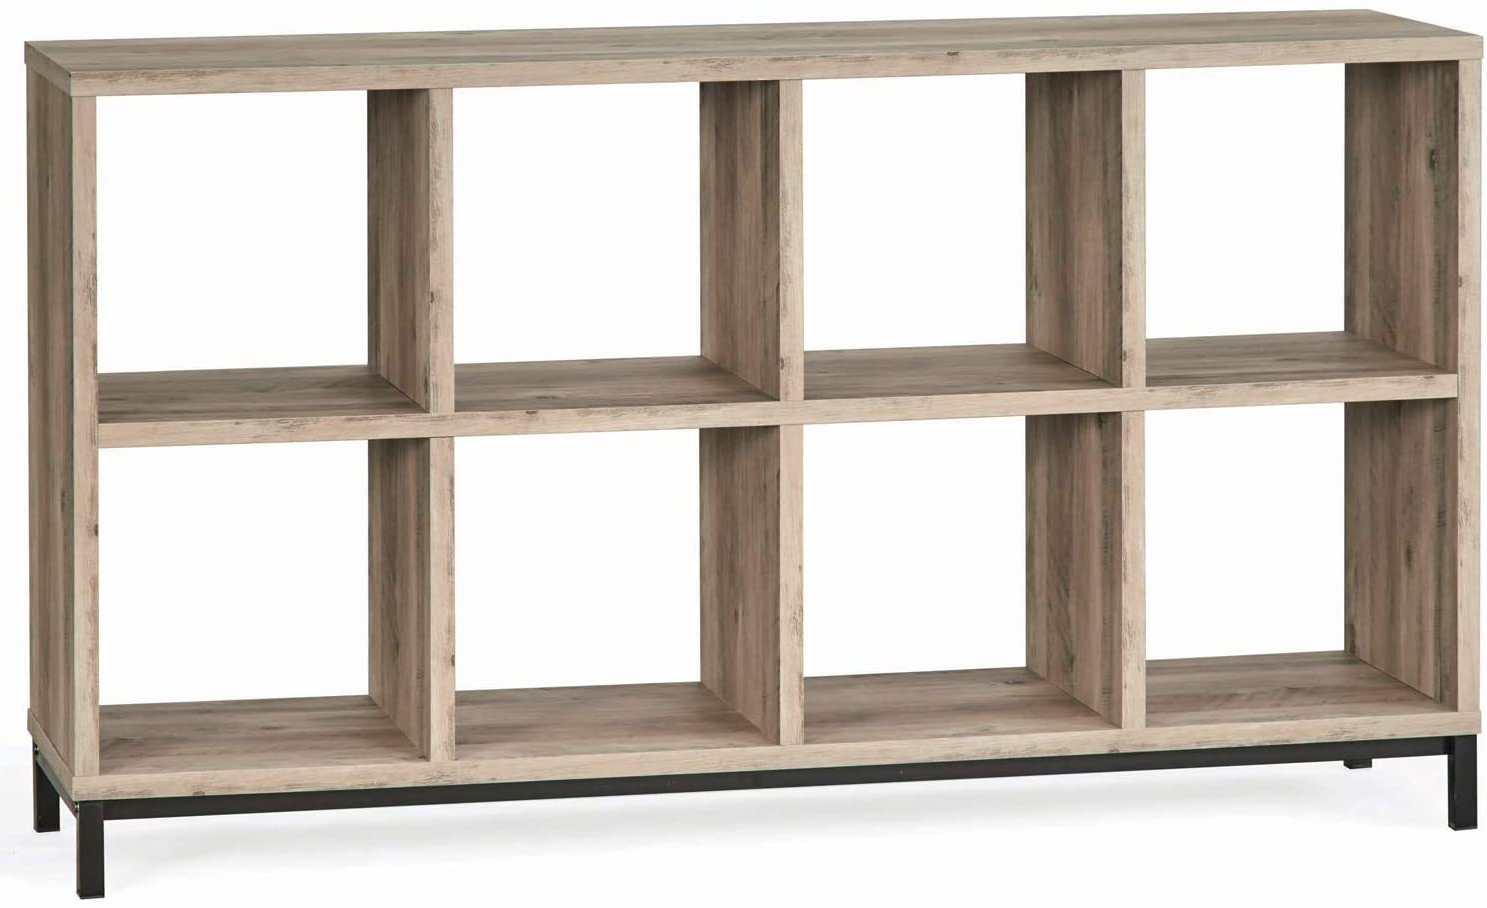 🥇 Top Quality Better Homes And Gardens Furniture Wood 2020 With Regard To Better Homes & Gardens Herringbone Tv Stands With Multiple Finishes (View 17 of 20)